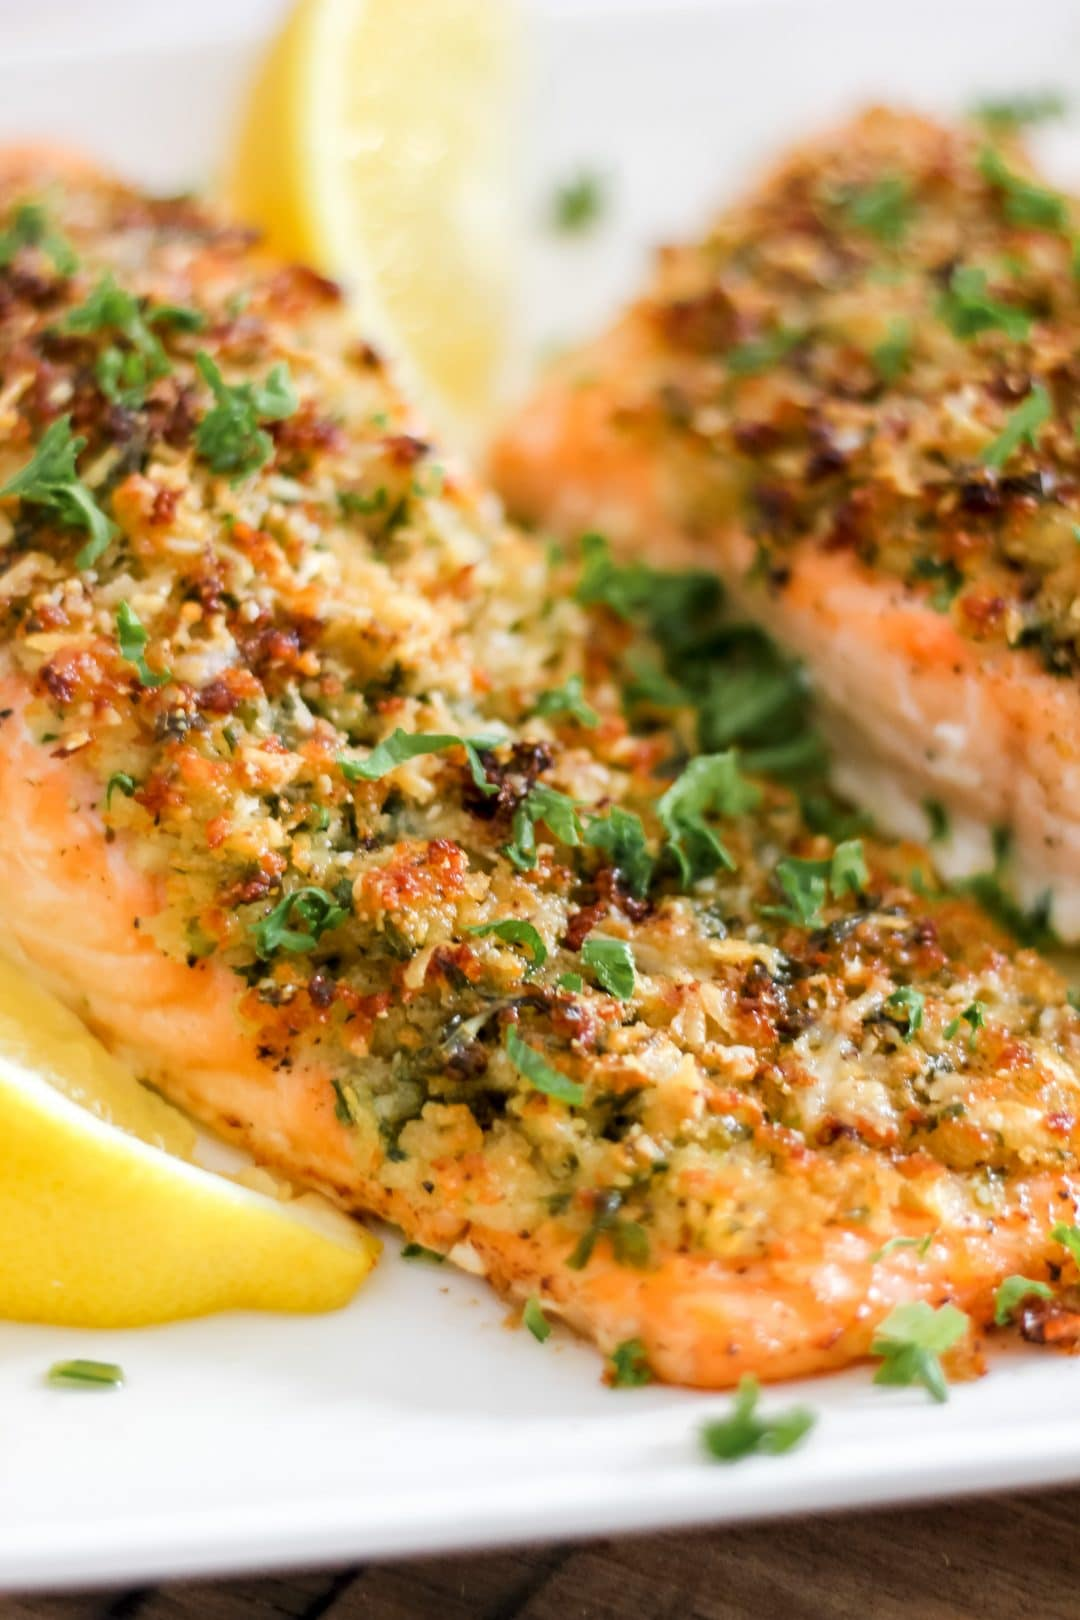 Parmesan Herb Crusted Salmon on White Plate